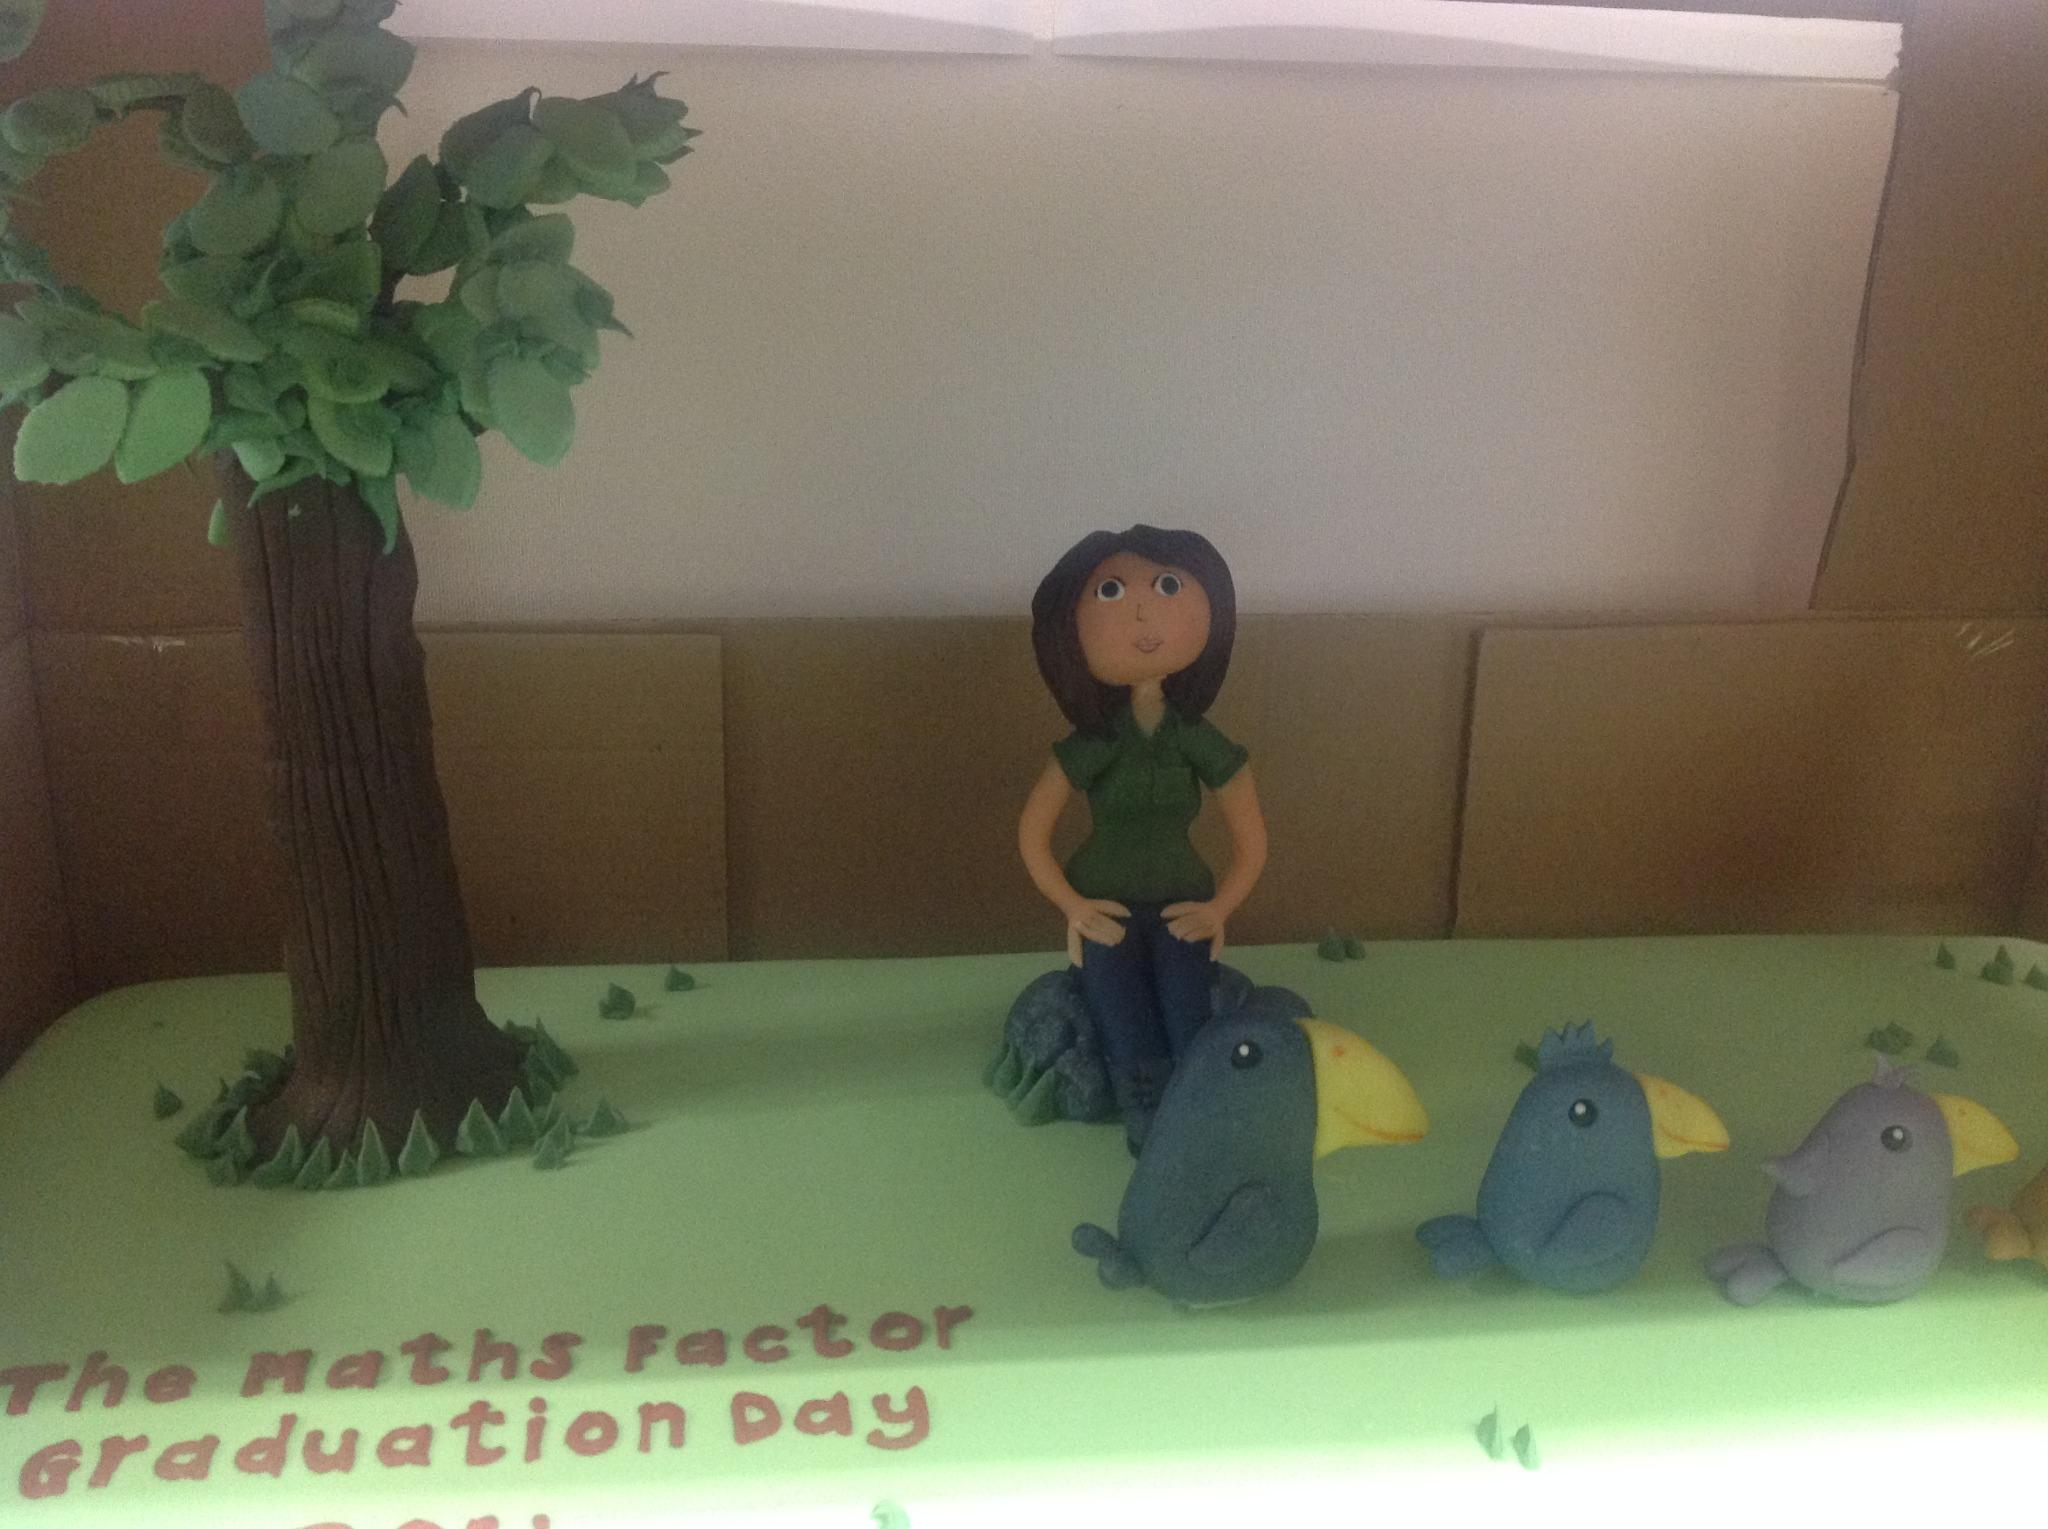 Having our http://t.co/O7Uw3FgjfL graduation on Monday! Here's a sneak peek of the cake..with a sugared me on top!! x http://t.co/fLFUe5eV8b